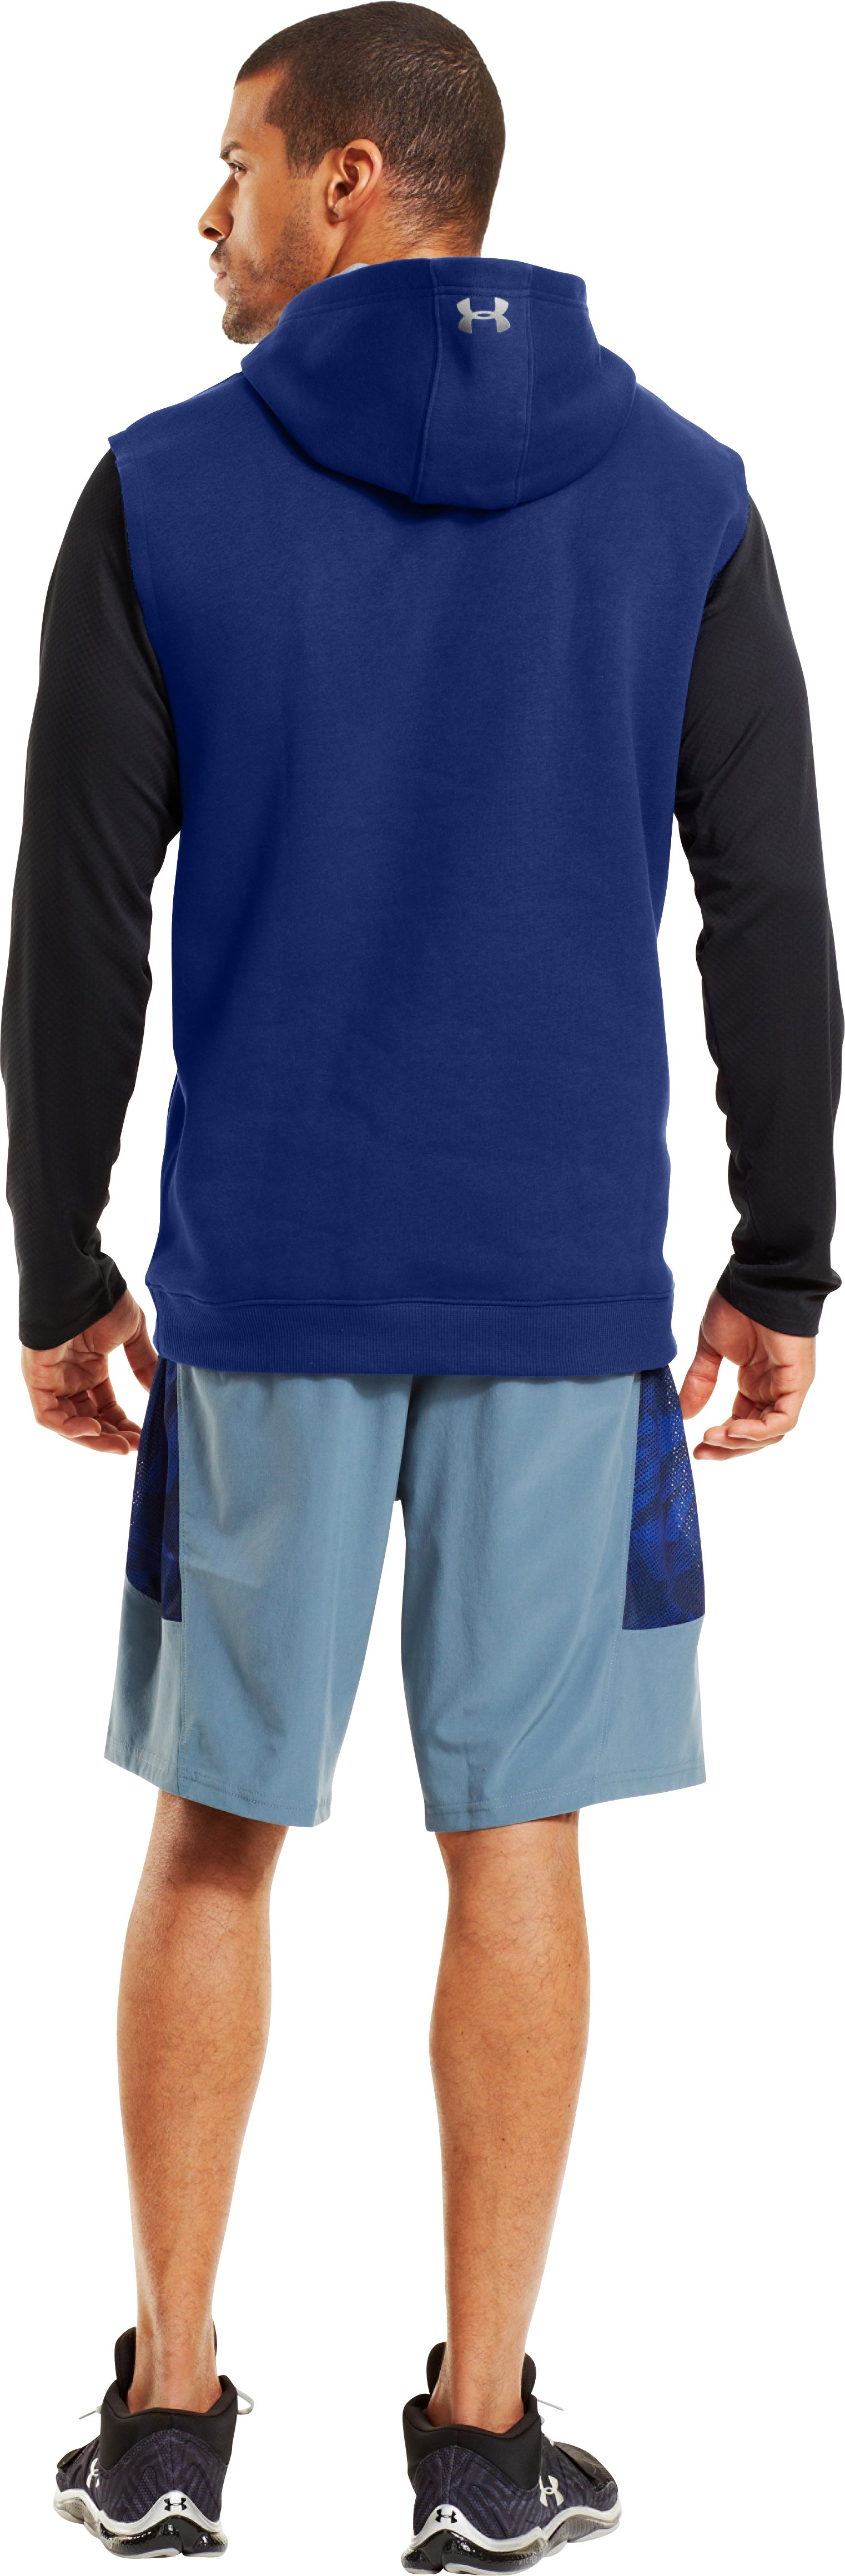 Men's UA Combine® Training Charged Cotton® Storm Sleeveless Hoodie, Bauhaus Blue, Back